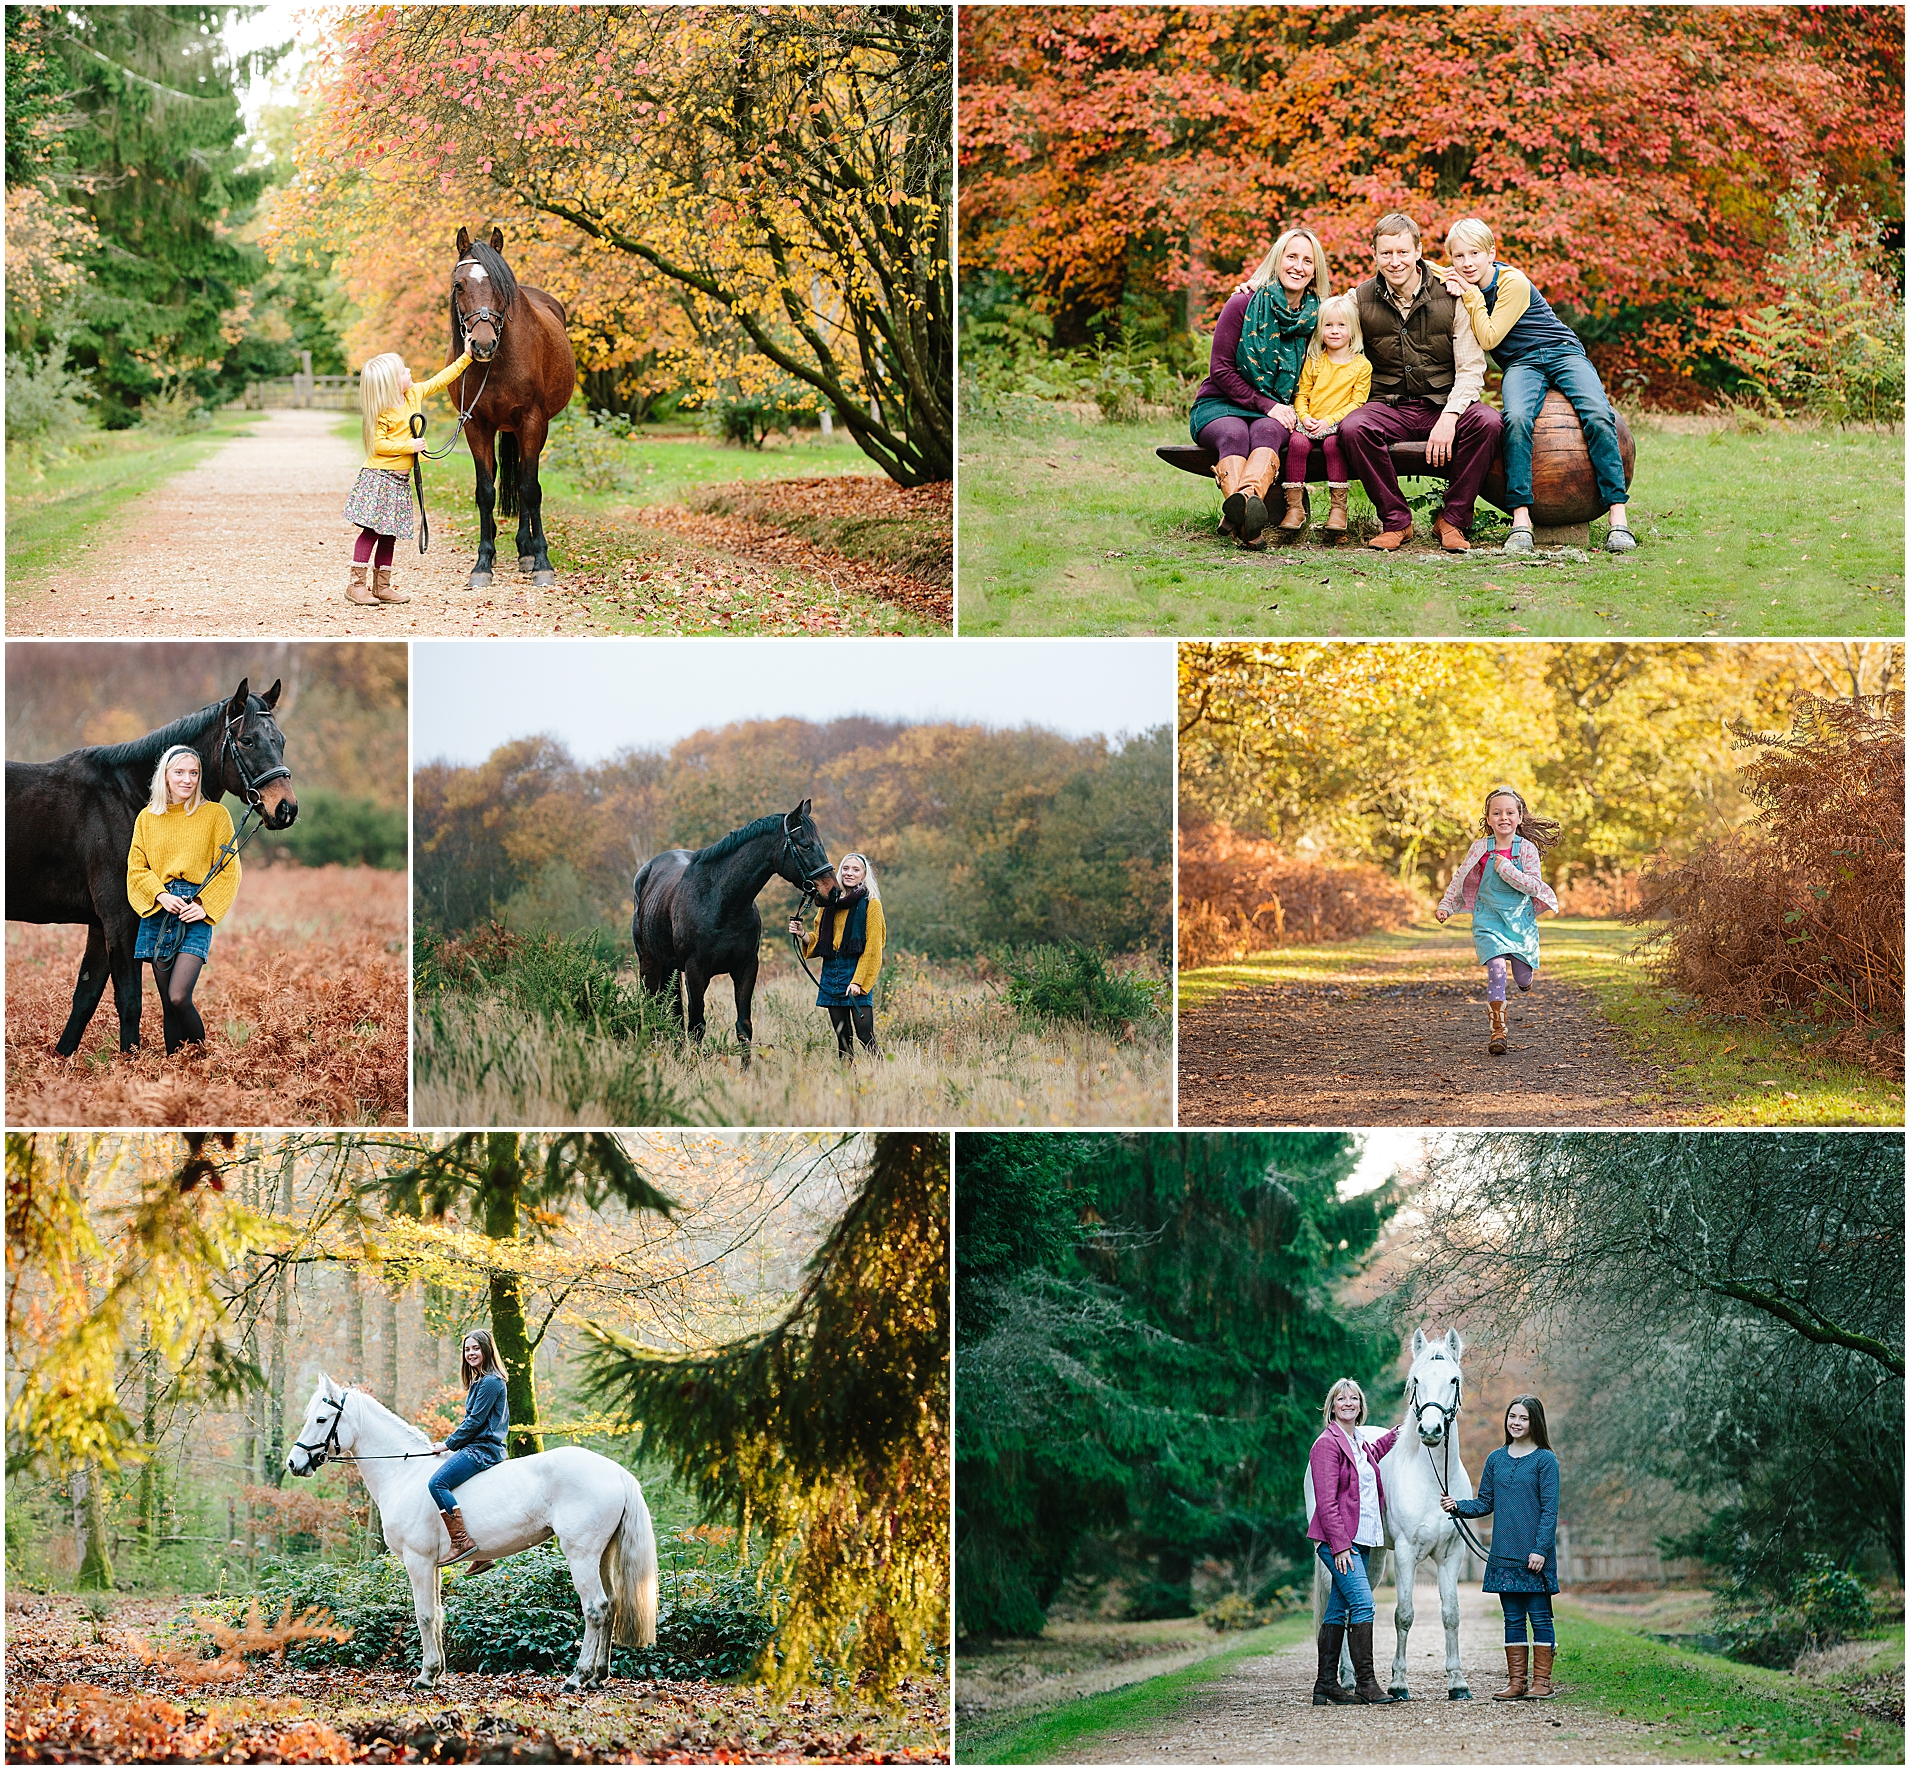 Autumn equine and family photoshoots